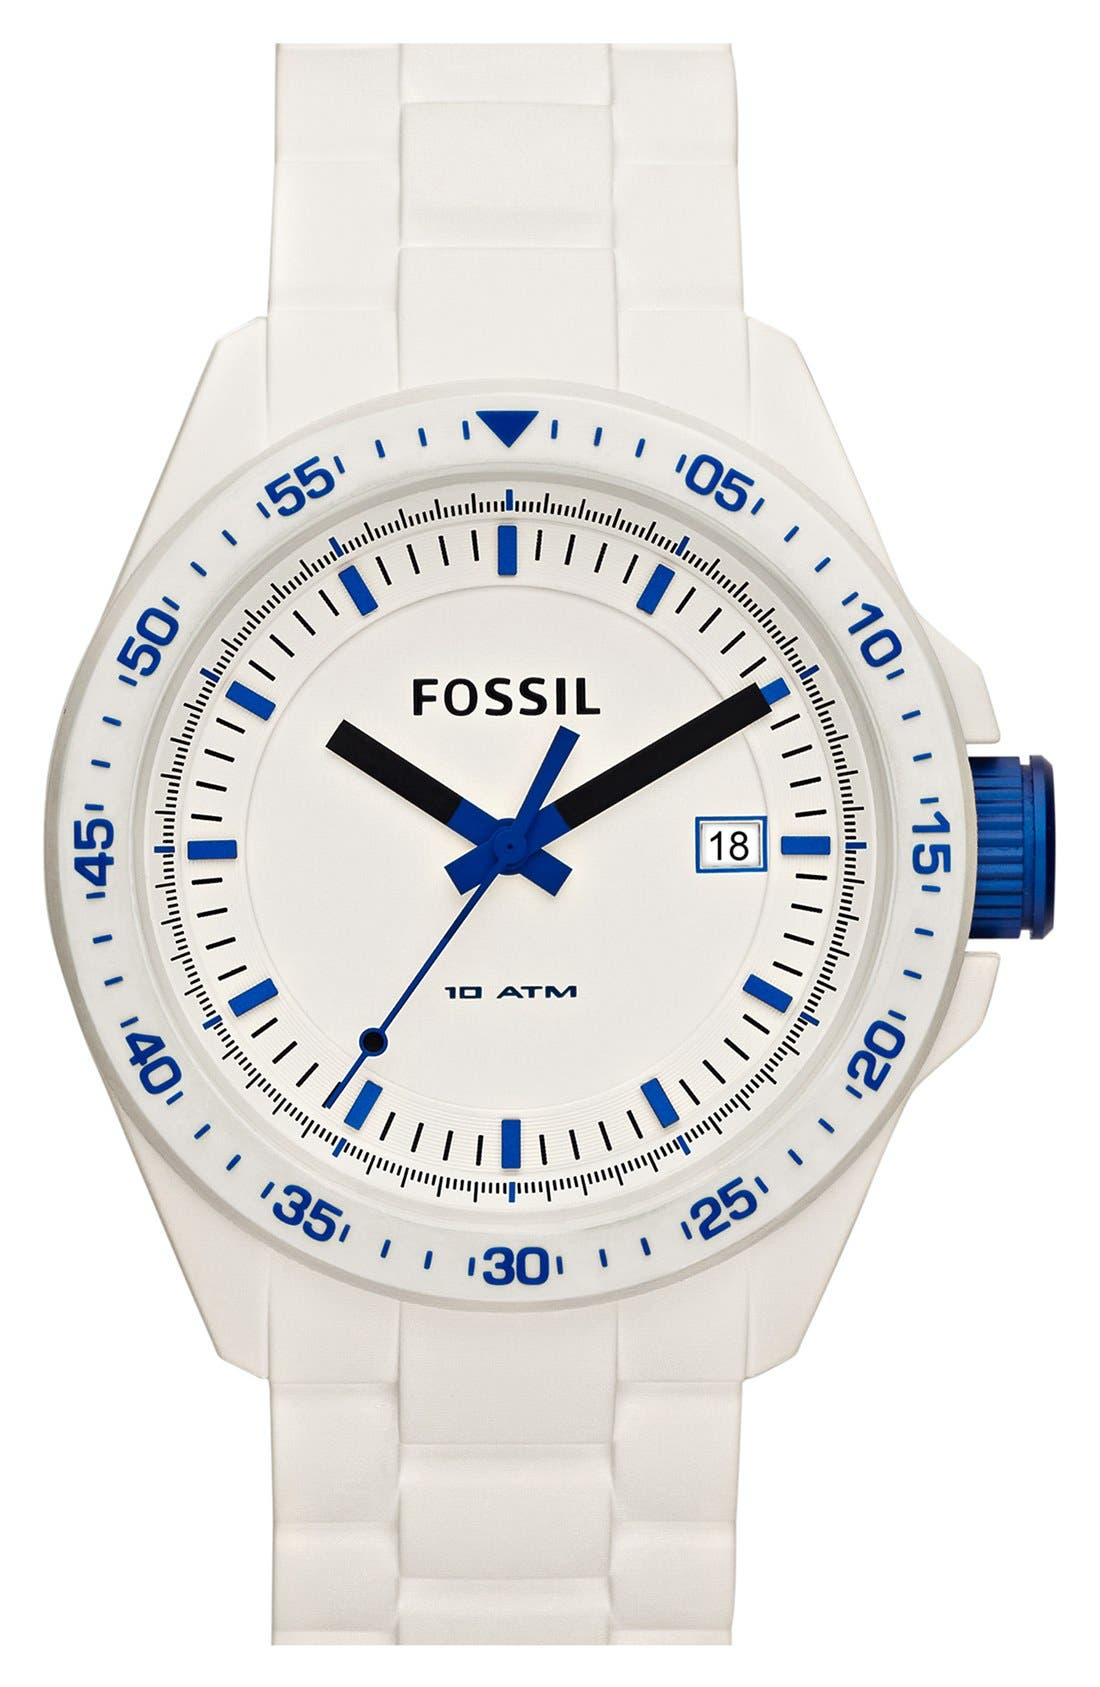 Main Image - Fossil 'Decker' Silicone Watch, 45mm